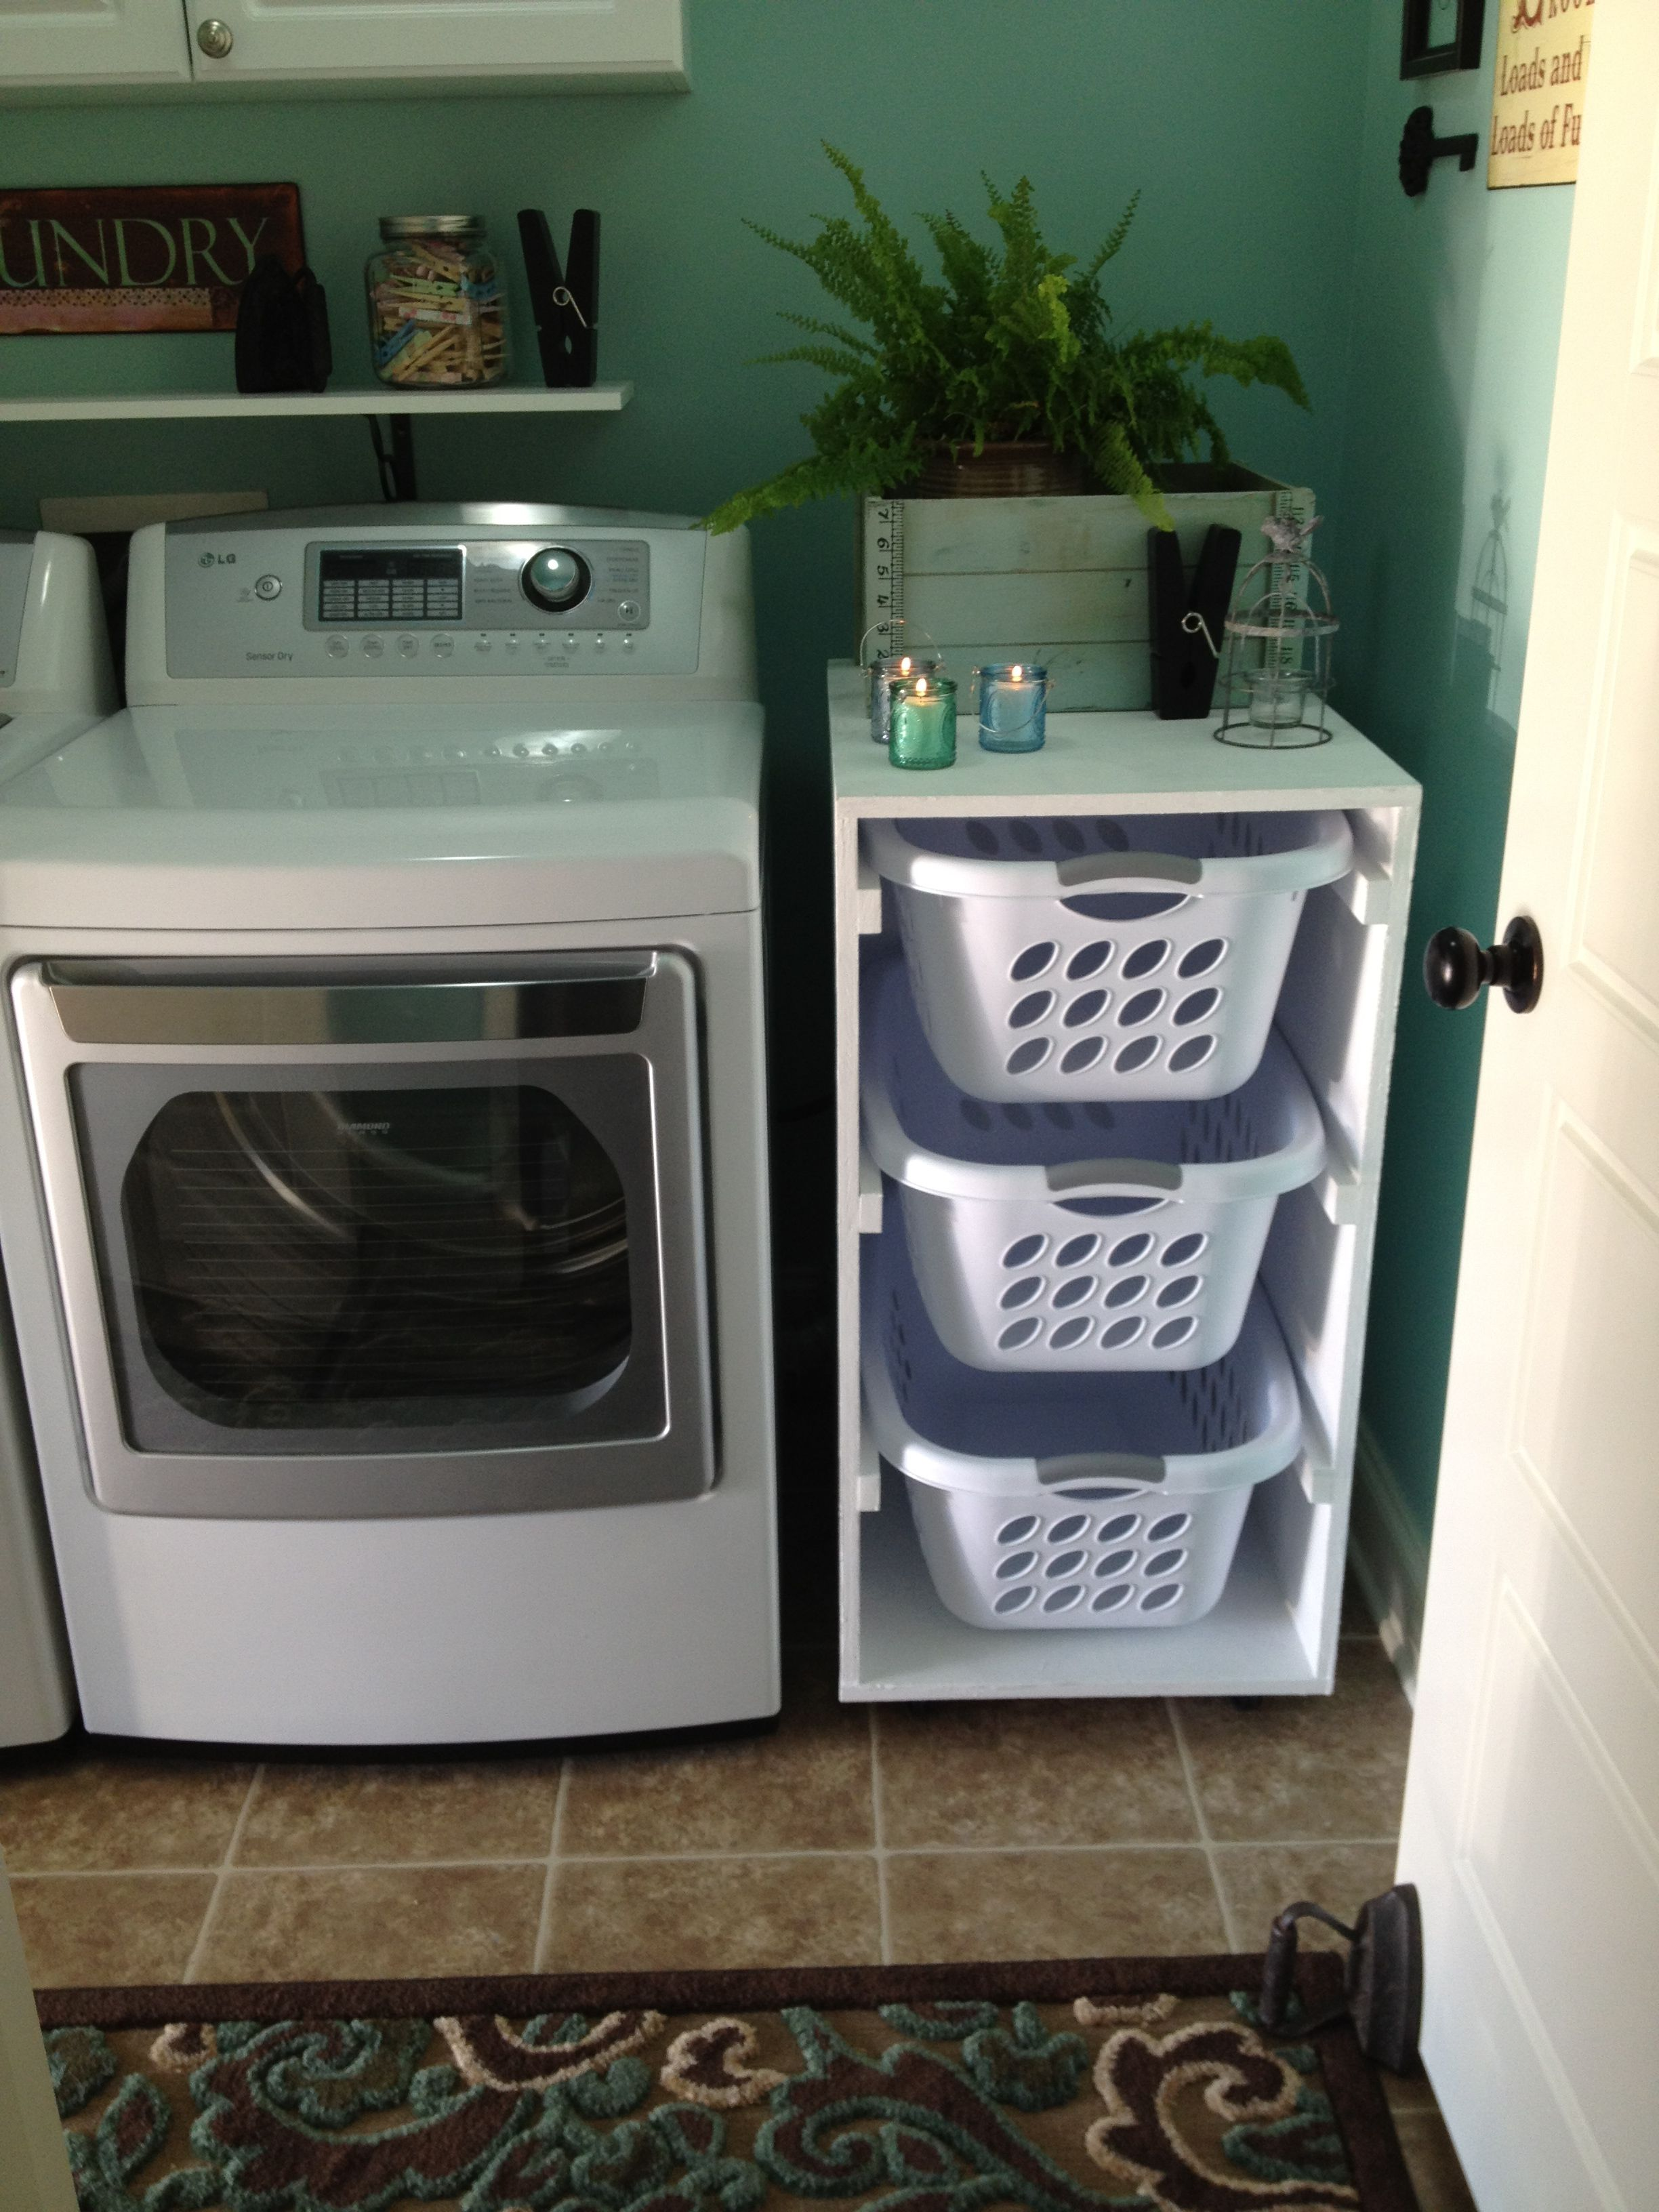 Laundry Basket With Shelves Laundry Basket Holder Next Project But Use One Shelf As